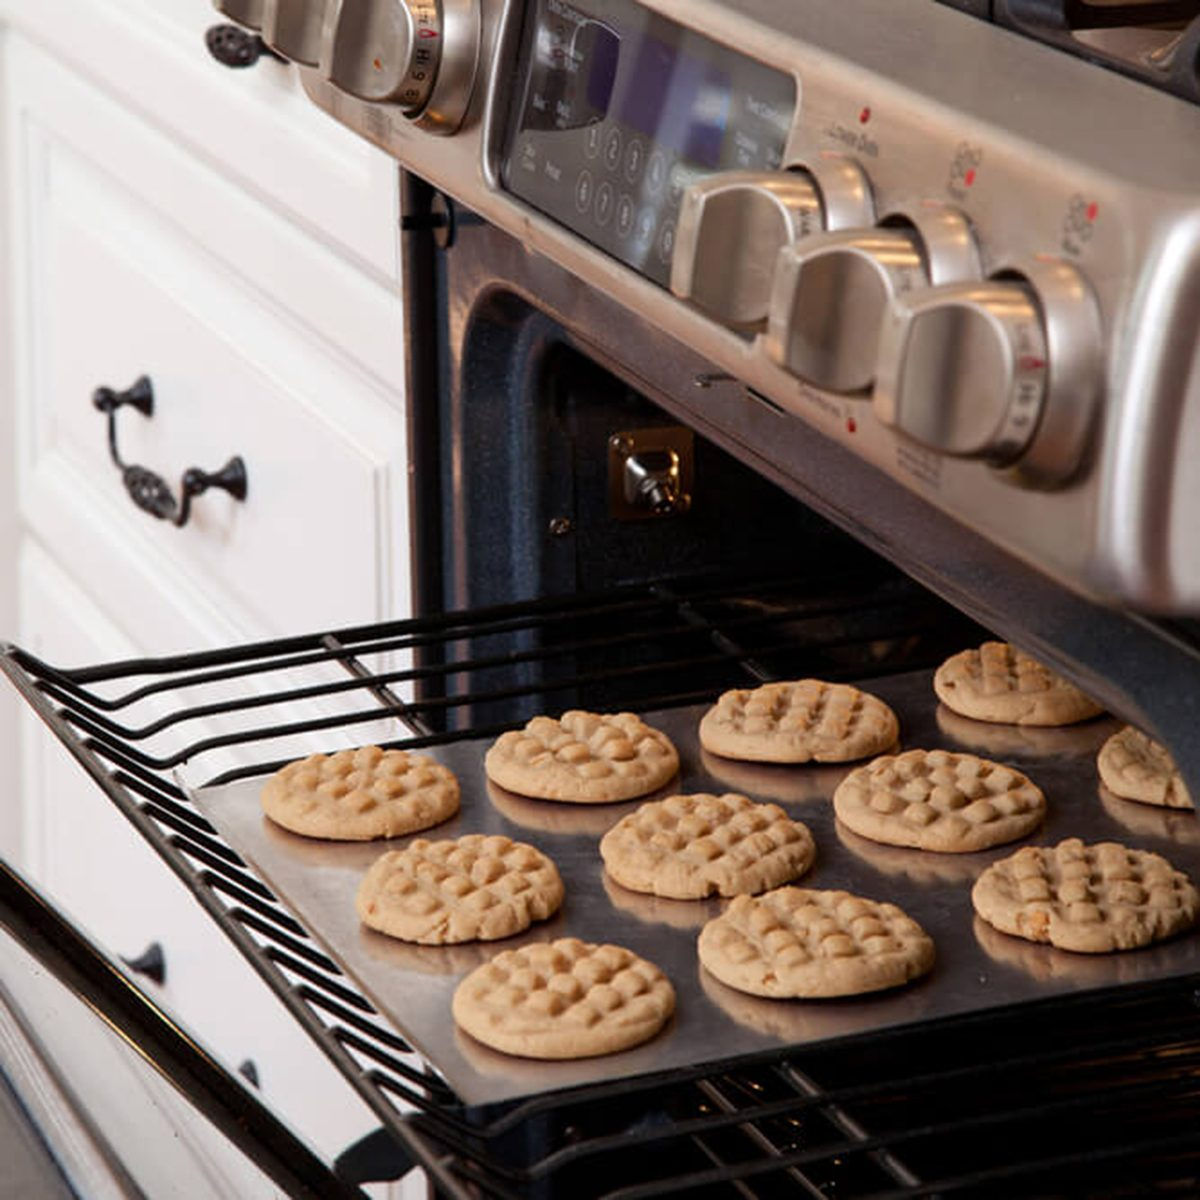 Tray of cookies coming out of the oven